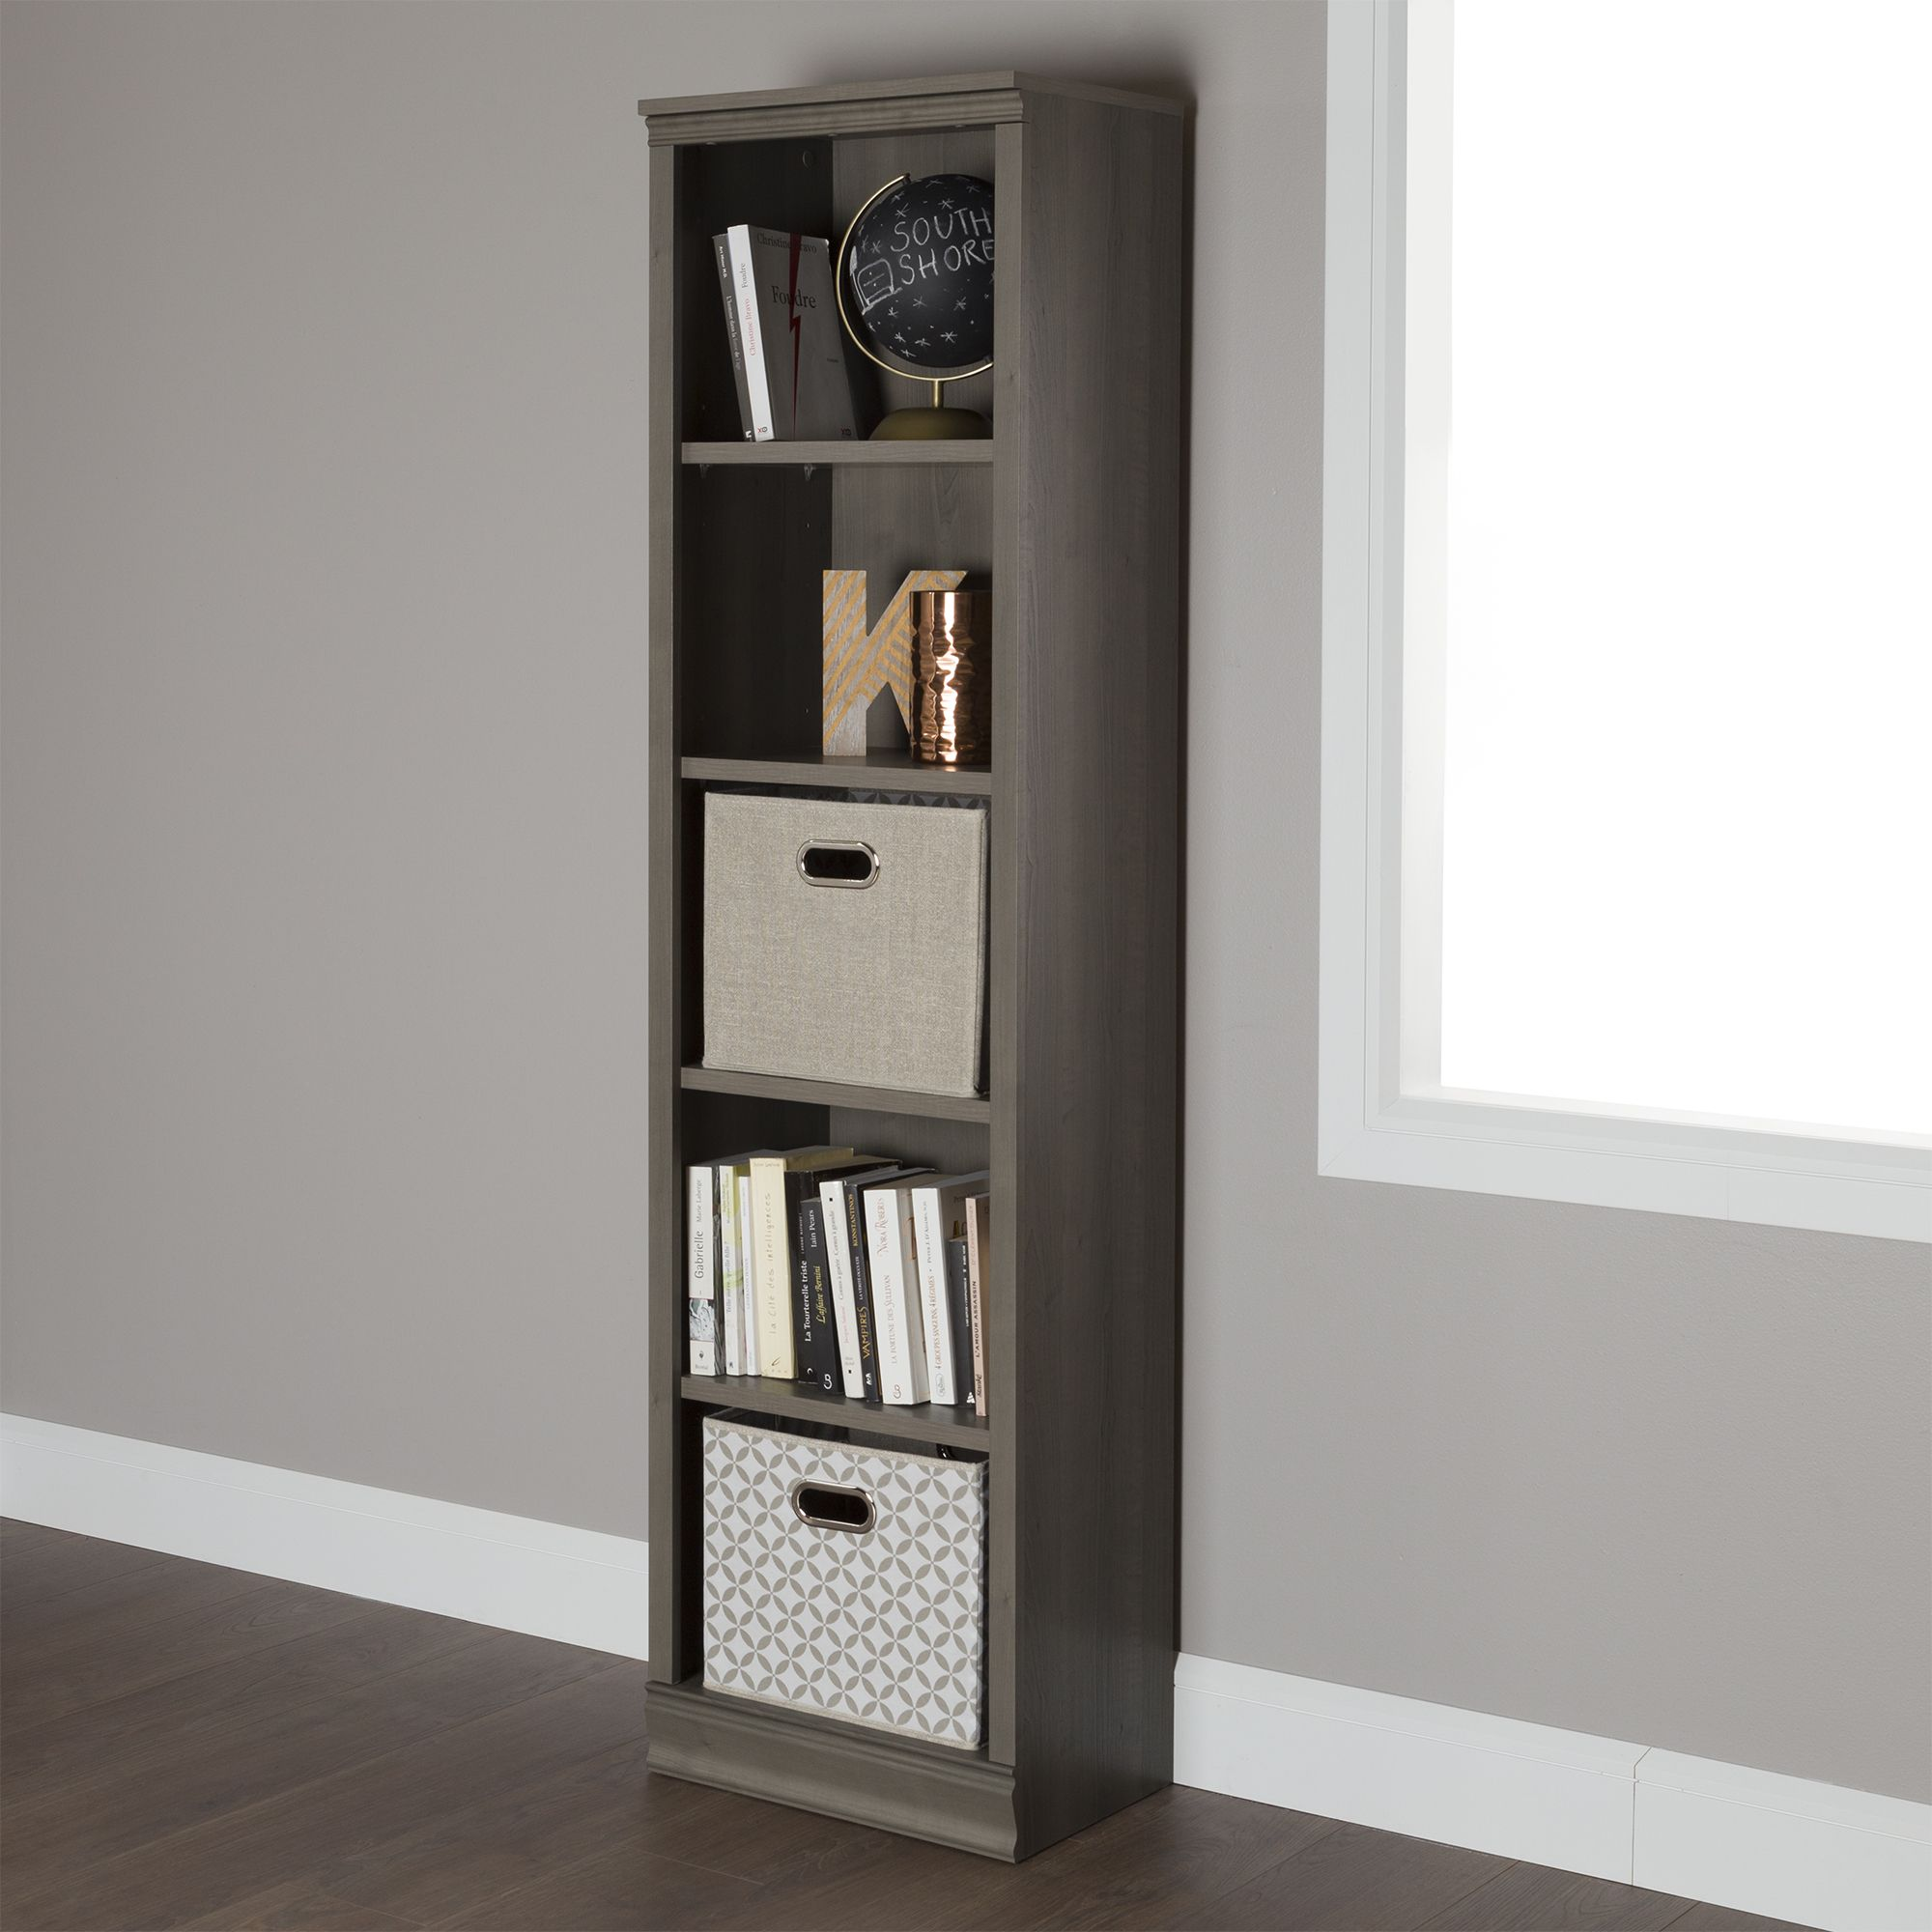 This Classic Style Shelving Unit Provides Some Handy Storage Solutions